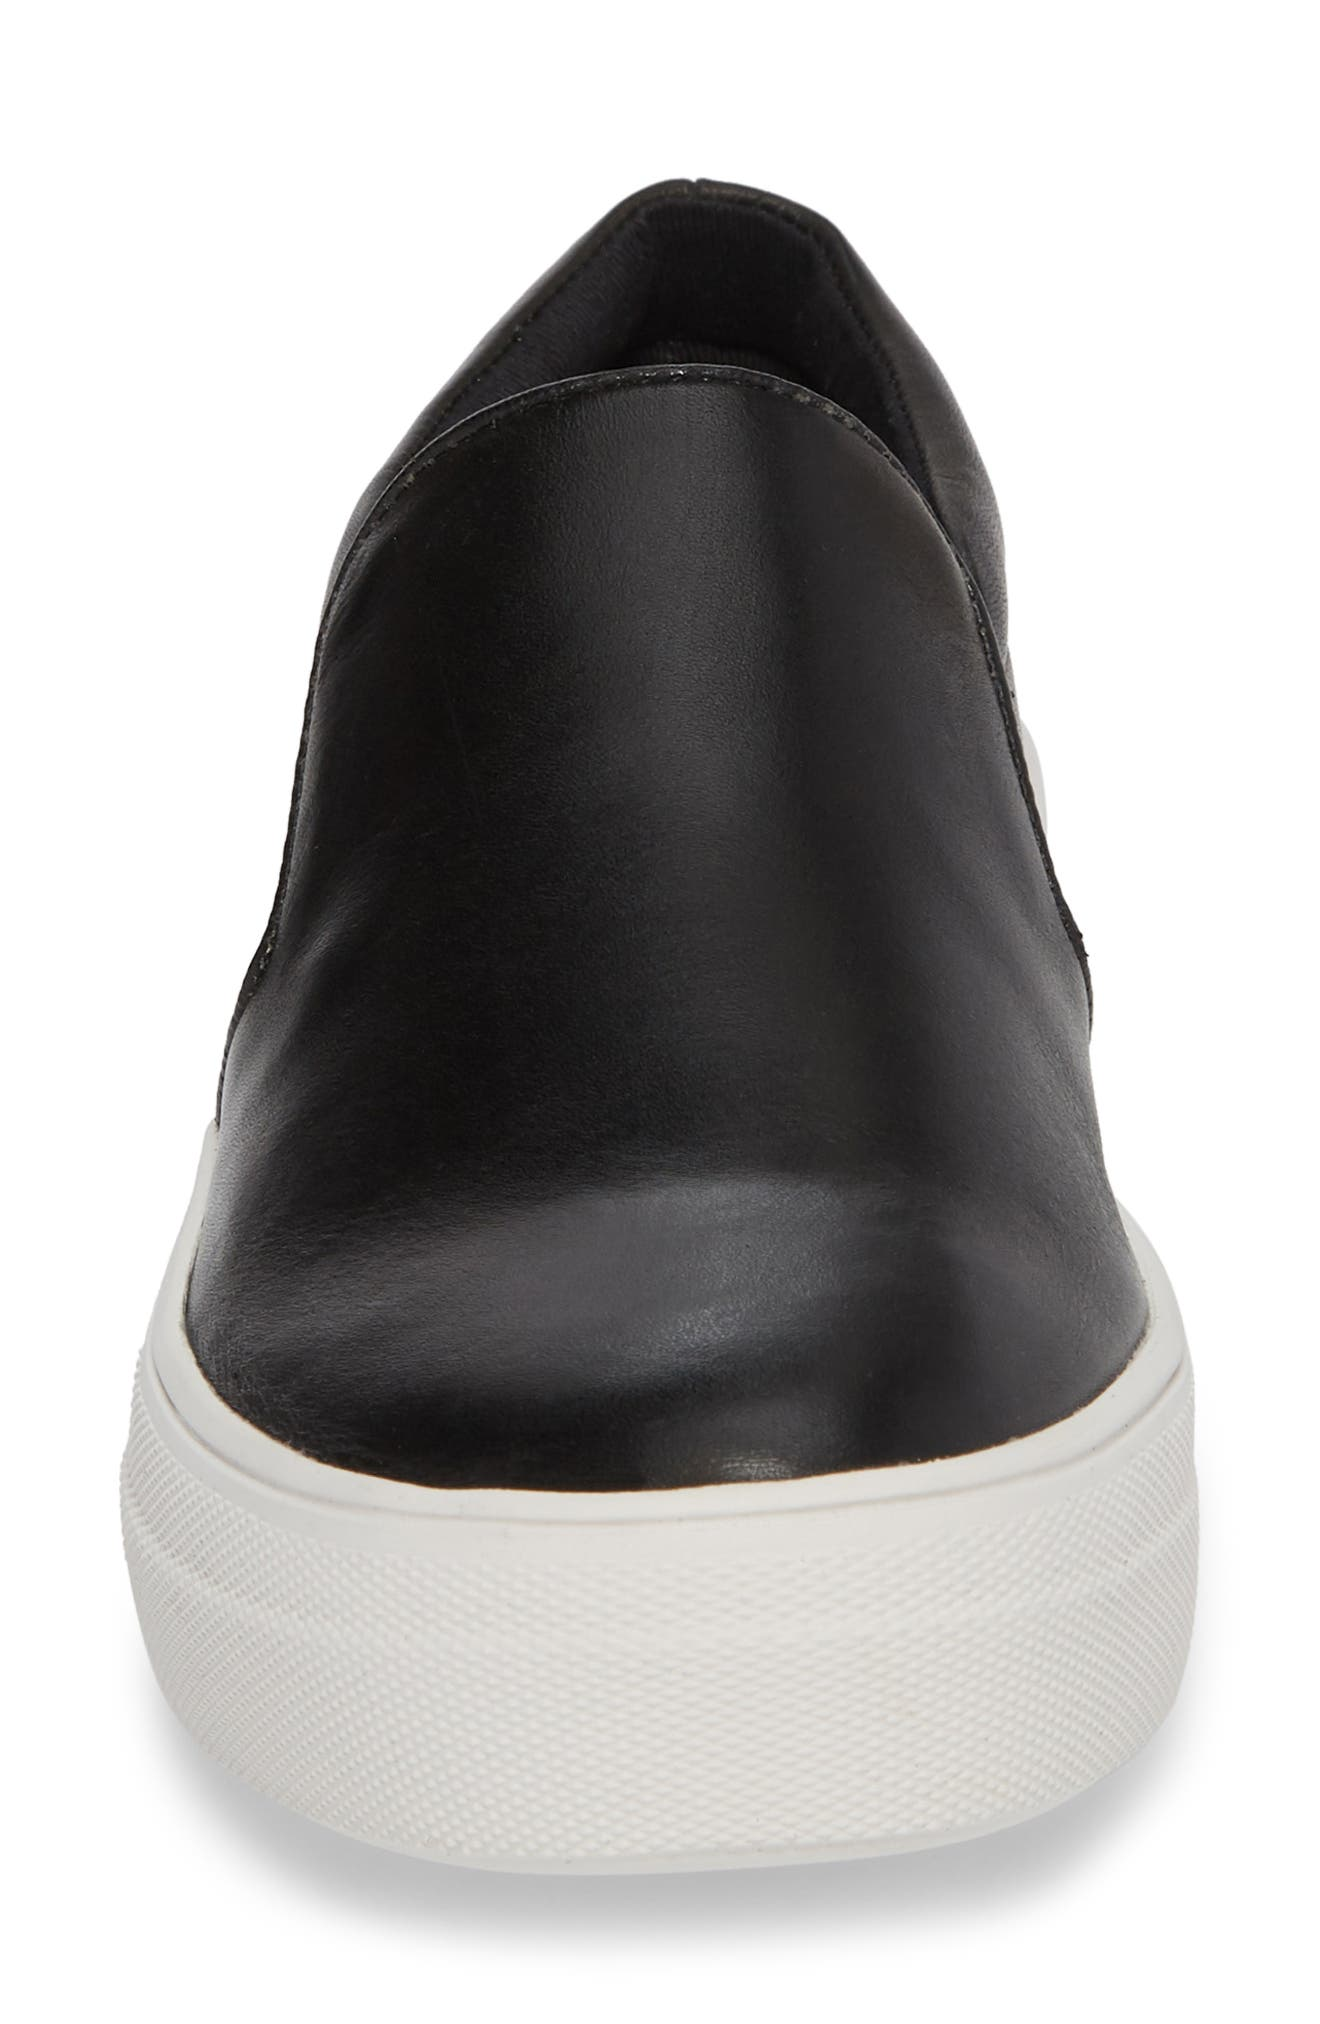 Gills Platform Slip-On Sneaker,                             Alternate thumbnail 4, color,                             BLACK LEATHER